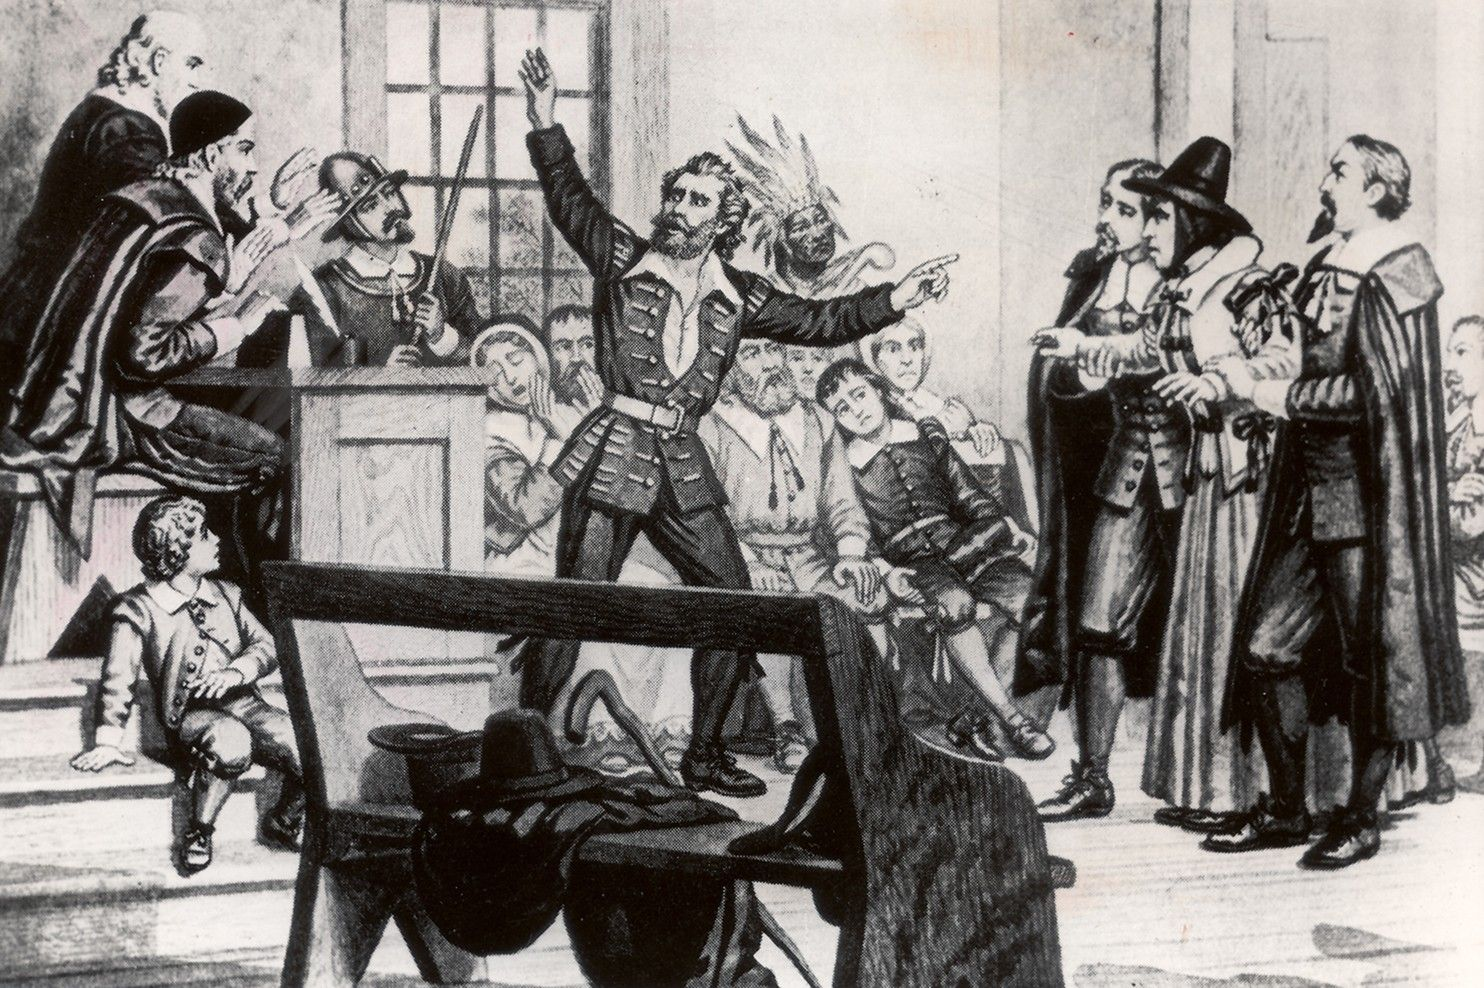 an account of events during the infamous witch trials between june and september of 1692 The salem witch trials were hearings and convictions of people suspected of witchcraft in massachusetts between 1692 and 1693 the prosecutions resulted in the executions of twenty individuals, fourteen of them women.